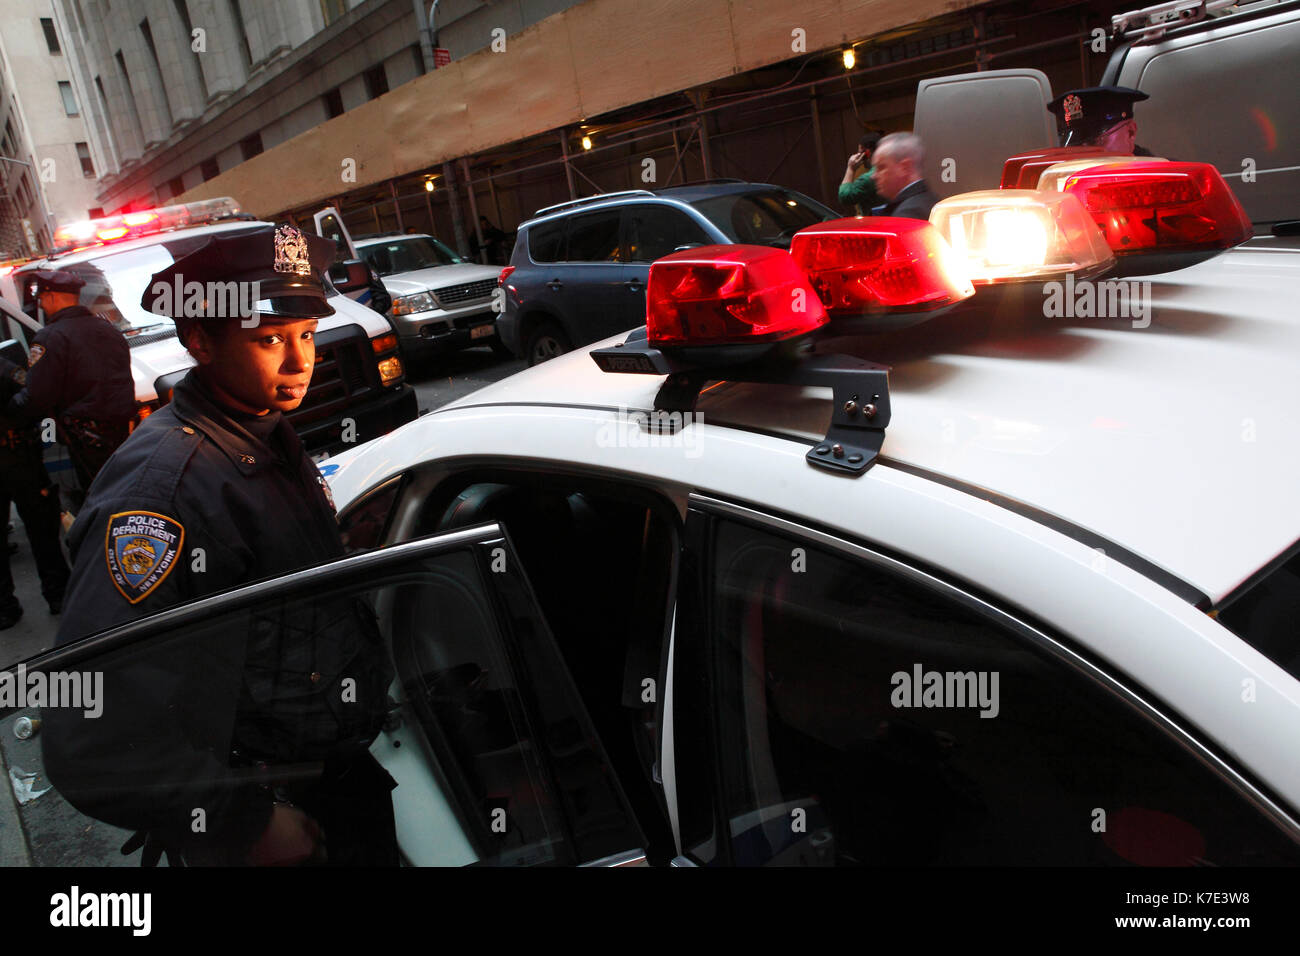 Police corruption united states stock photos police for Wall street motor cars